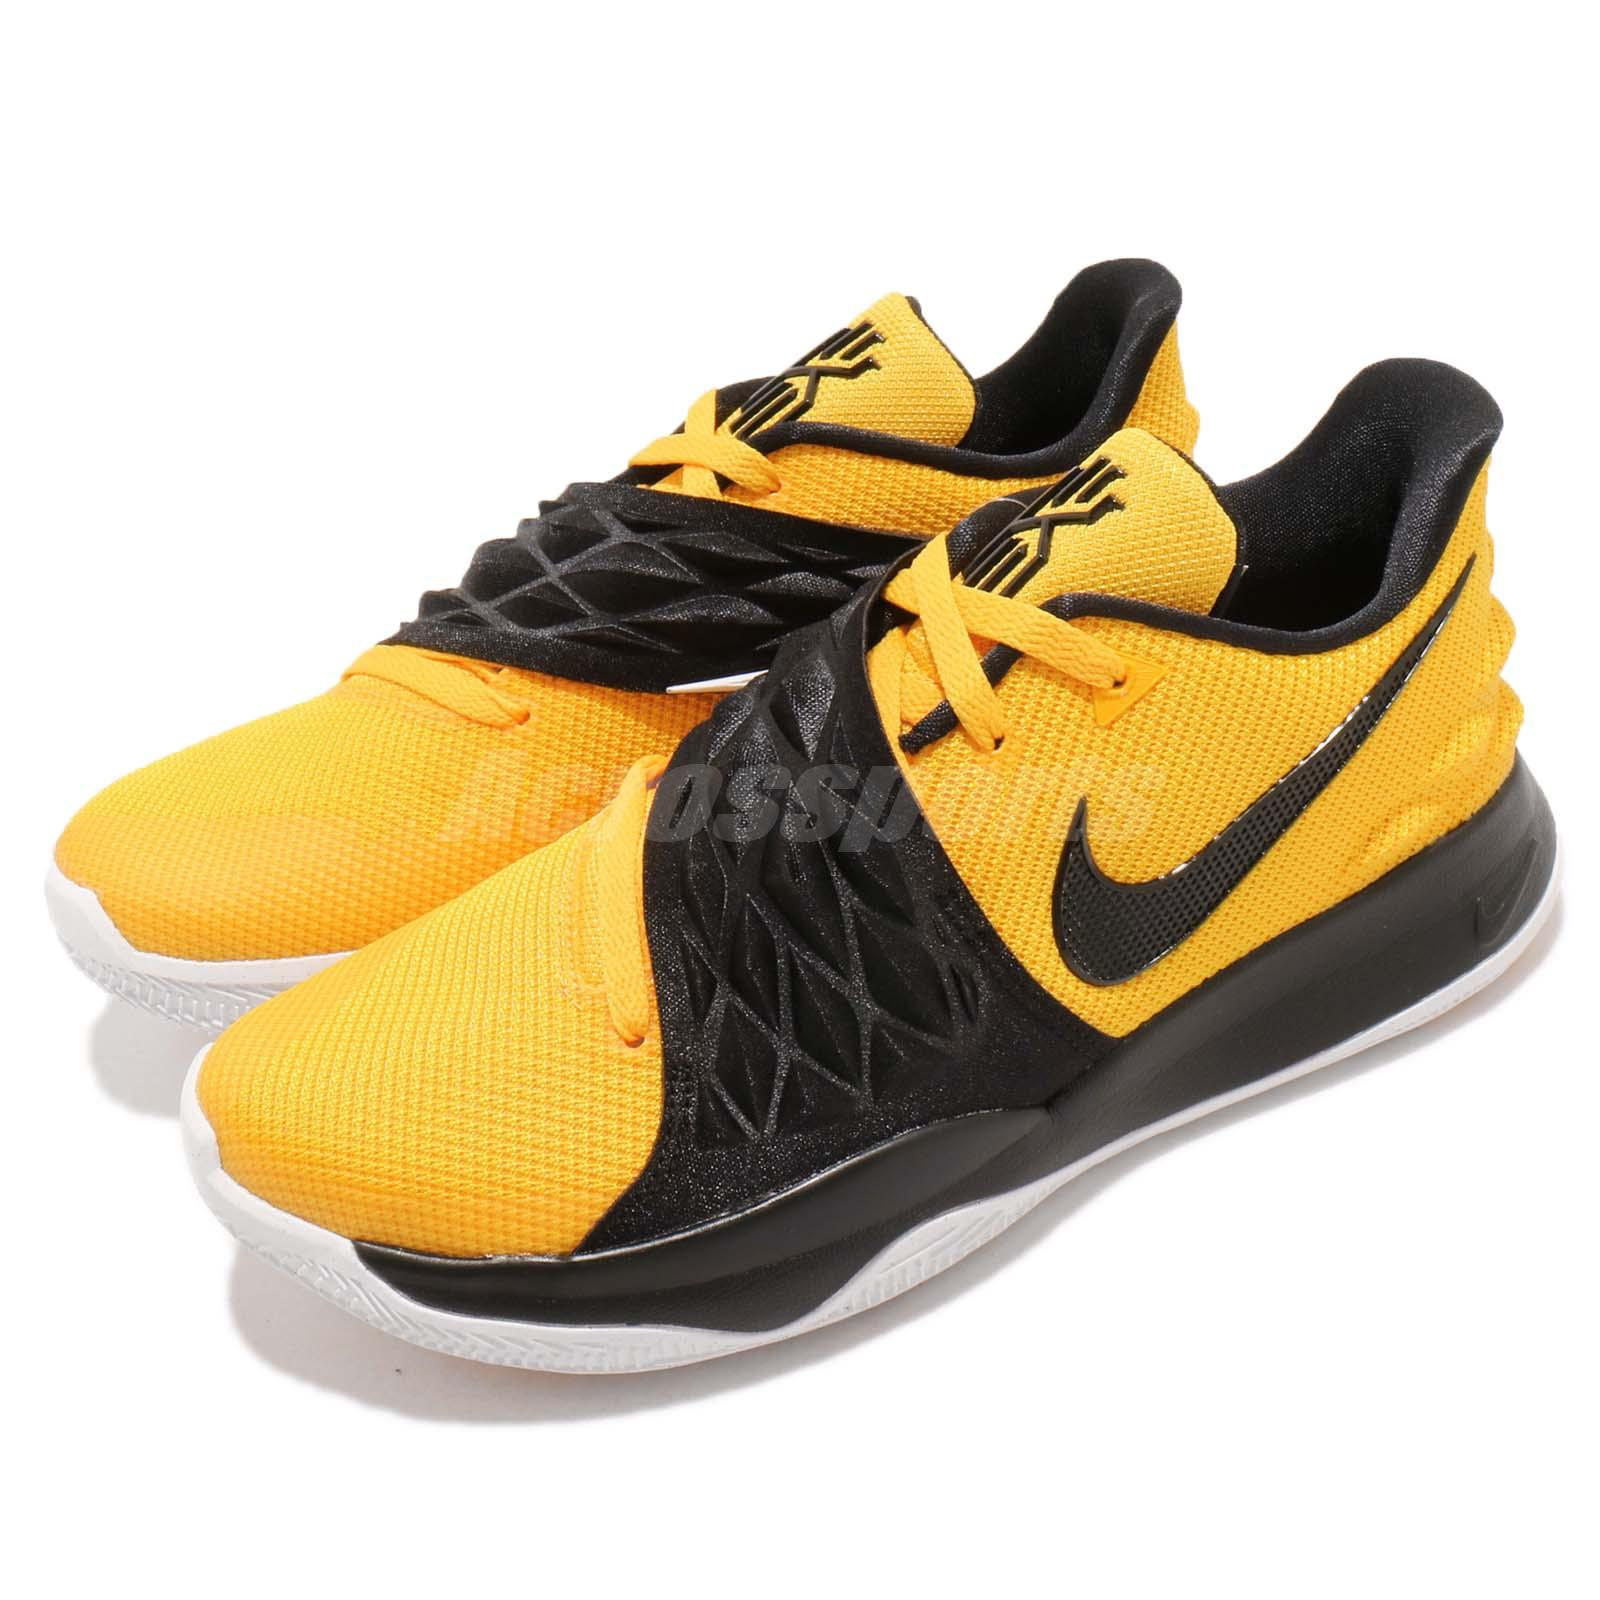 Details about Nike Kyrie 1 Low EP Irving Yellow Black Men Basketball Shoes  Sneakers AO8980-700 36754988a